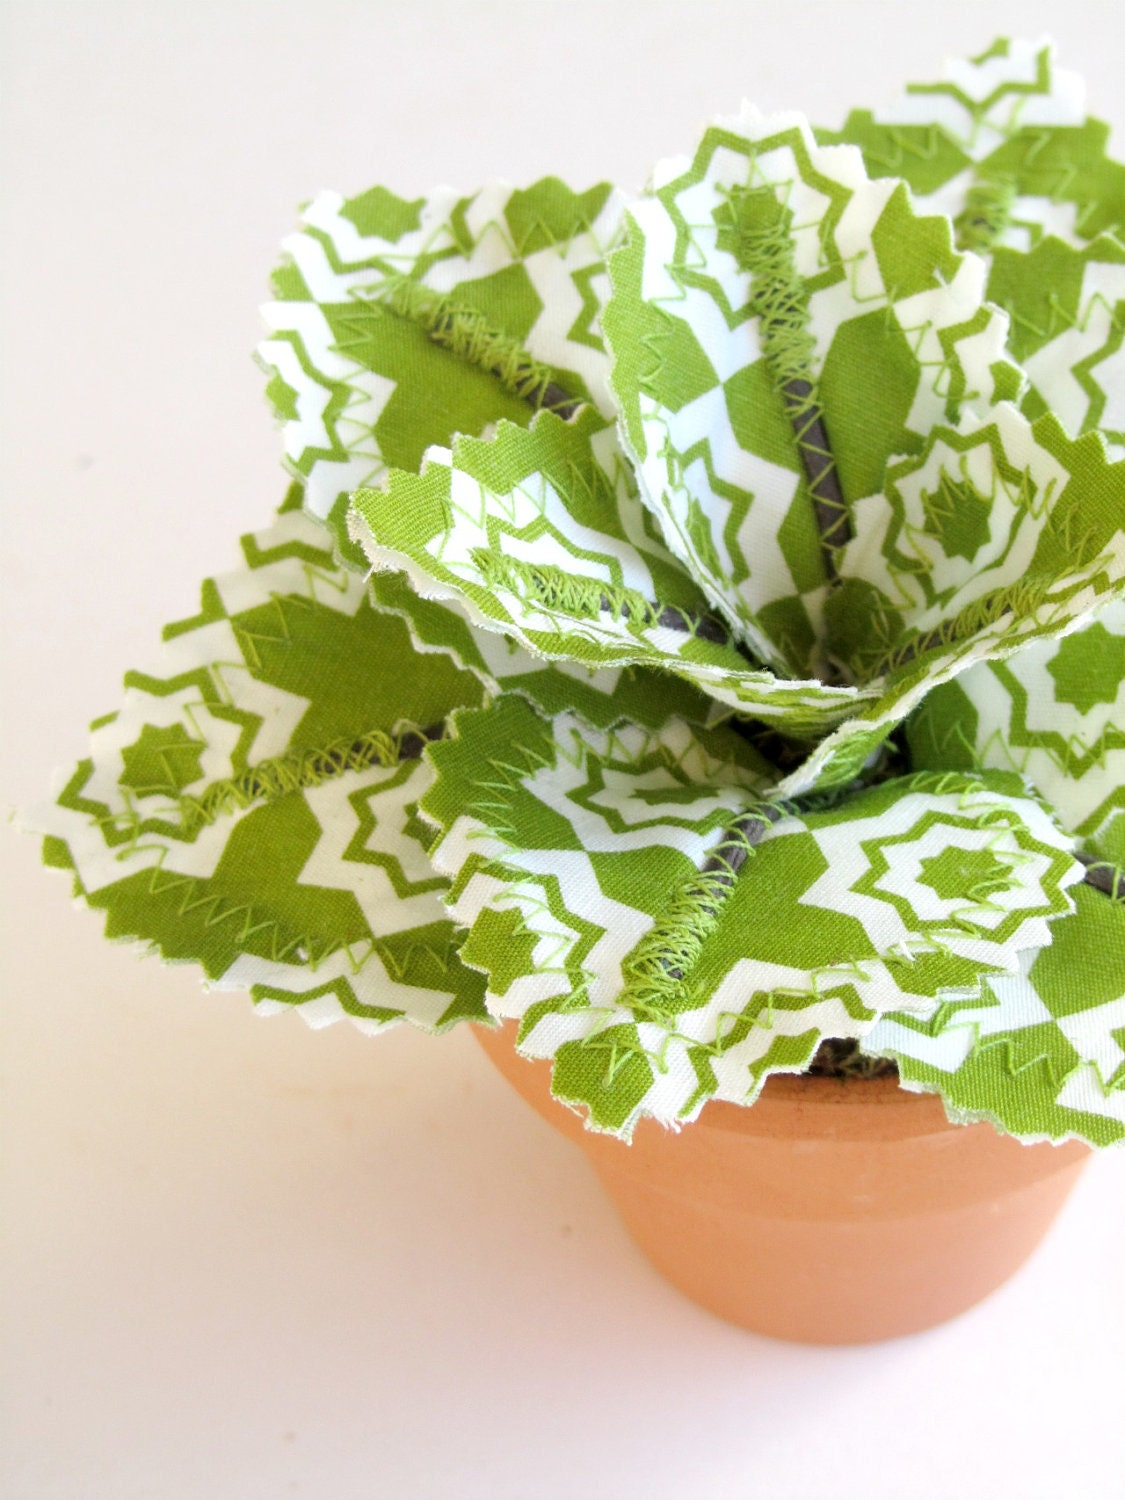 Fabric Leaf Potted Plant - Avocado Green Tiles Valentines Day Gift Idea